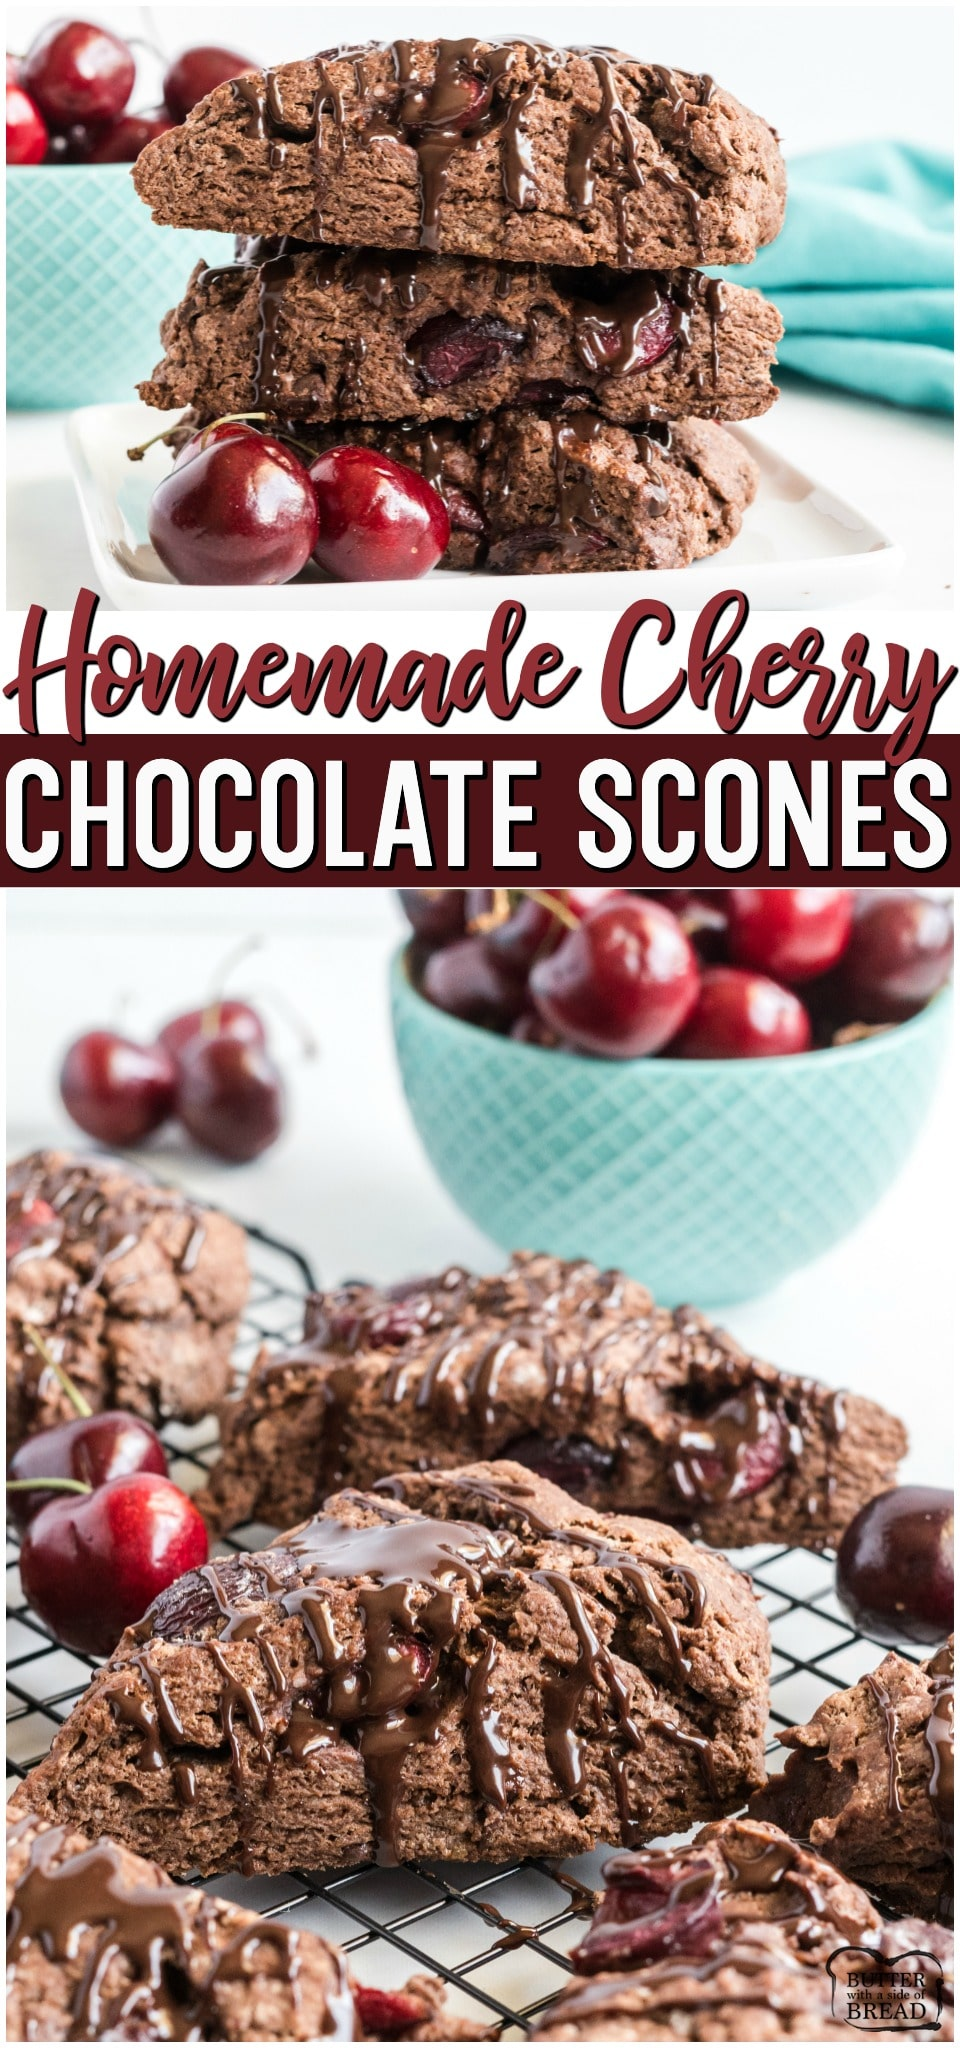 Cherry Chocolate Scones made with fresh cherries & dark chocolate for a perfect soft, sweet chocolate scone. Soft & flavorful homemade scone recipe great for breakfast or a treat!